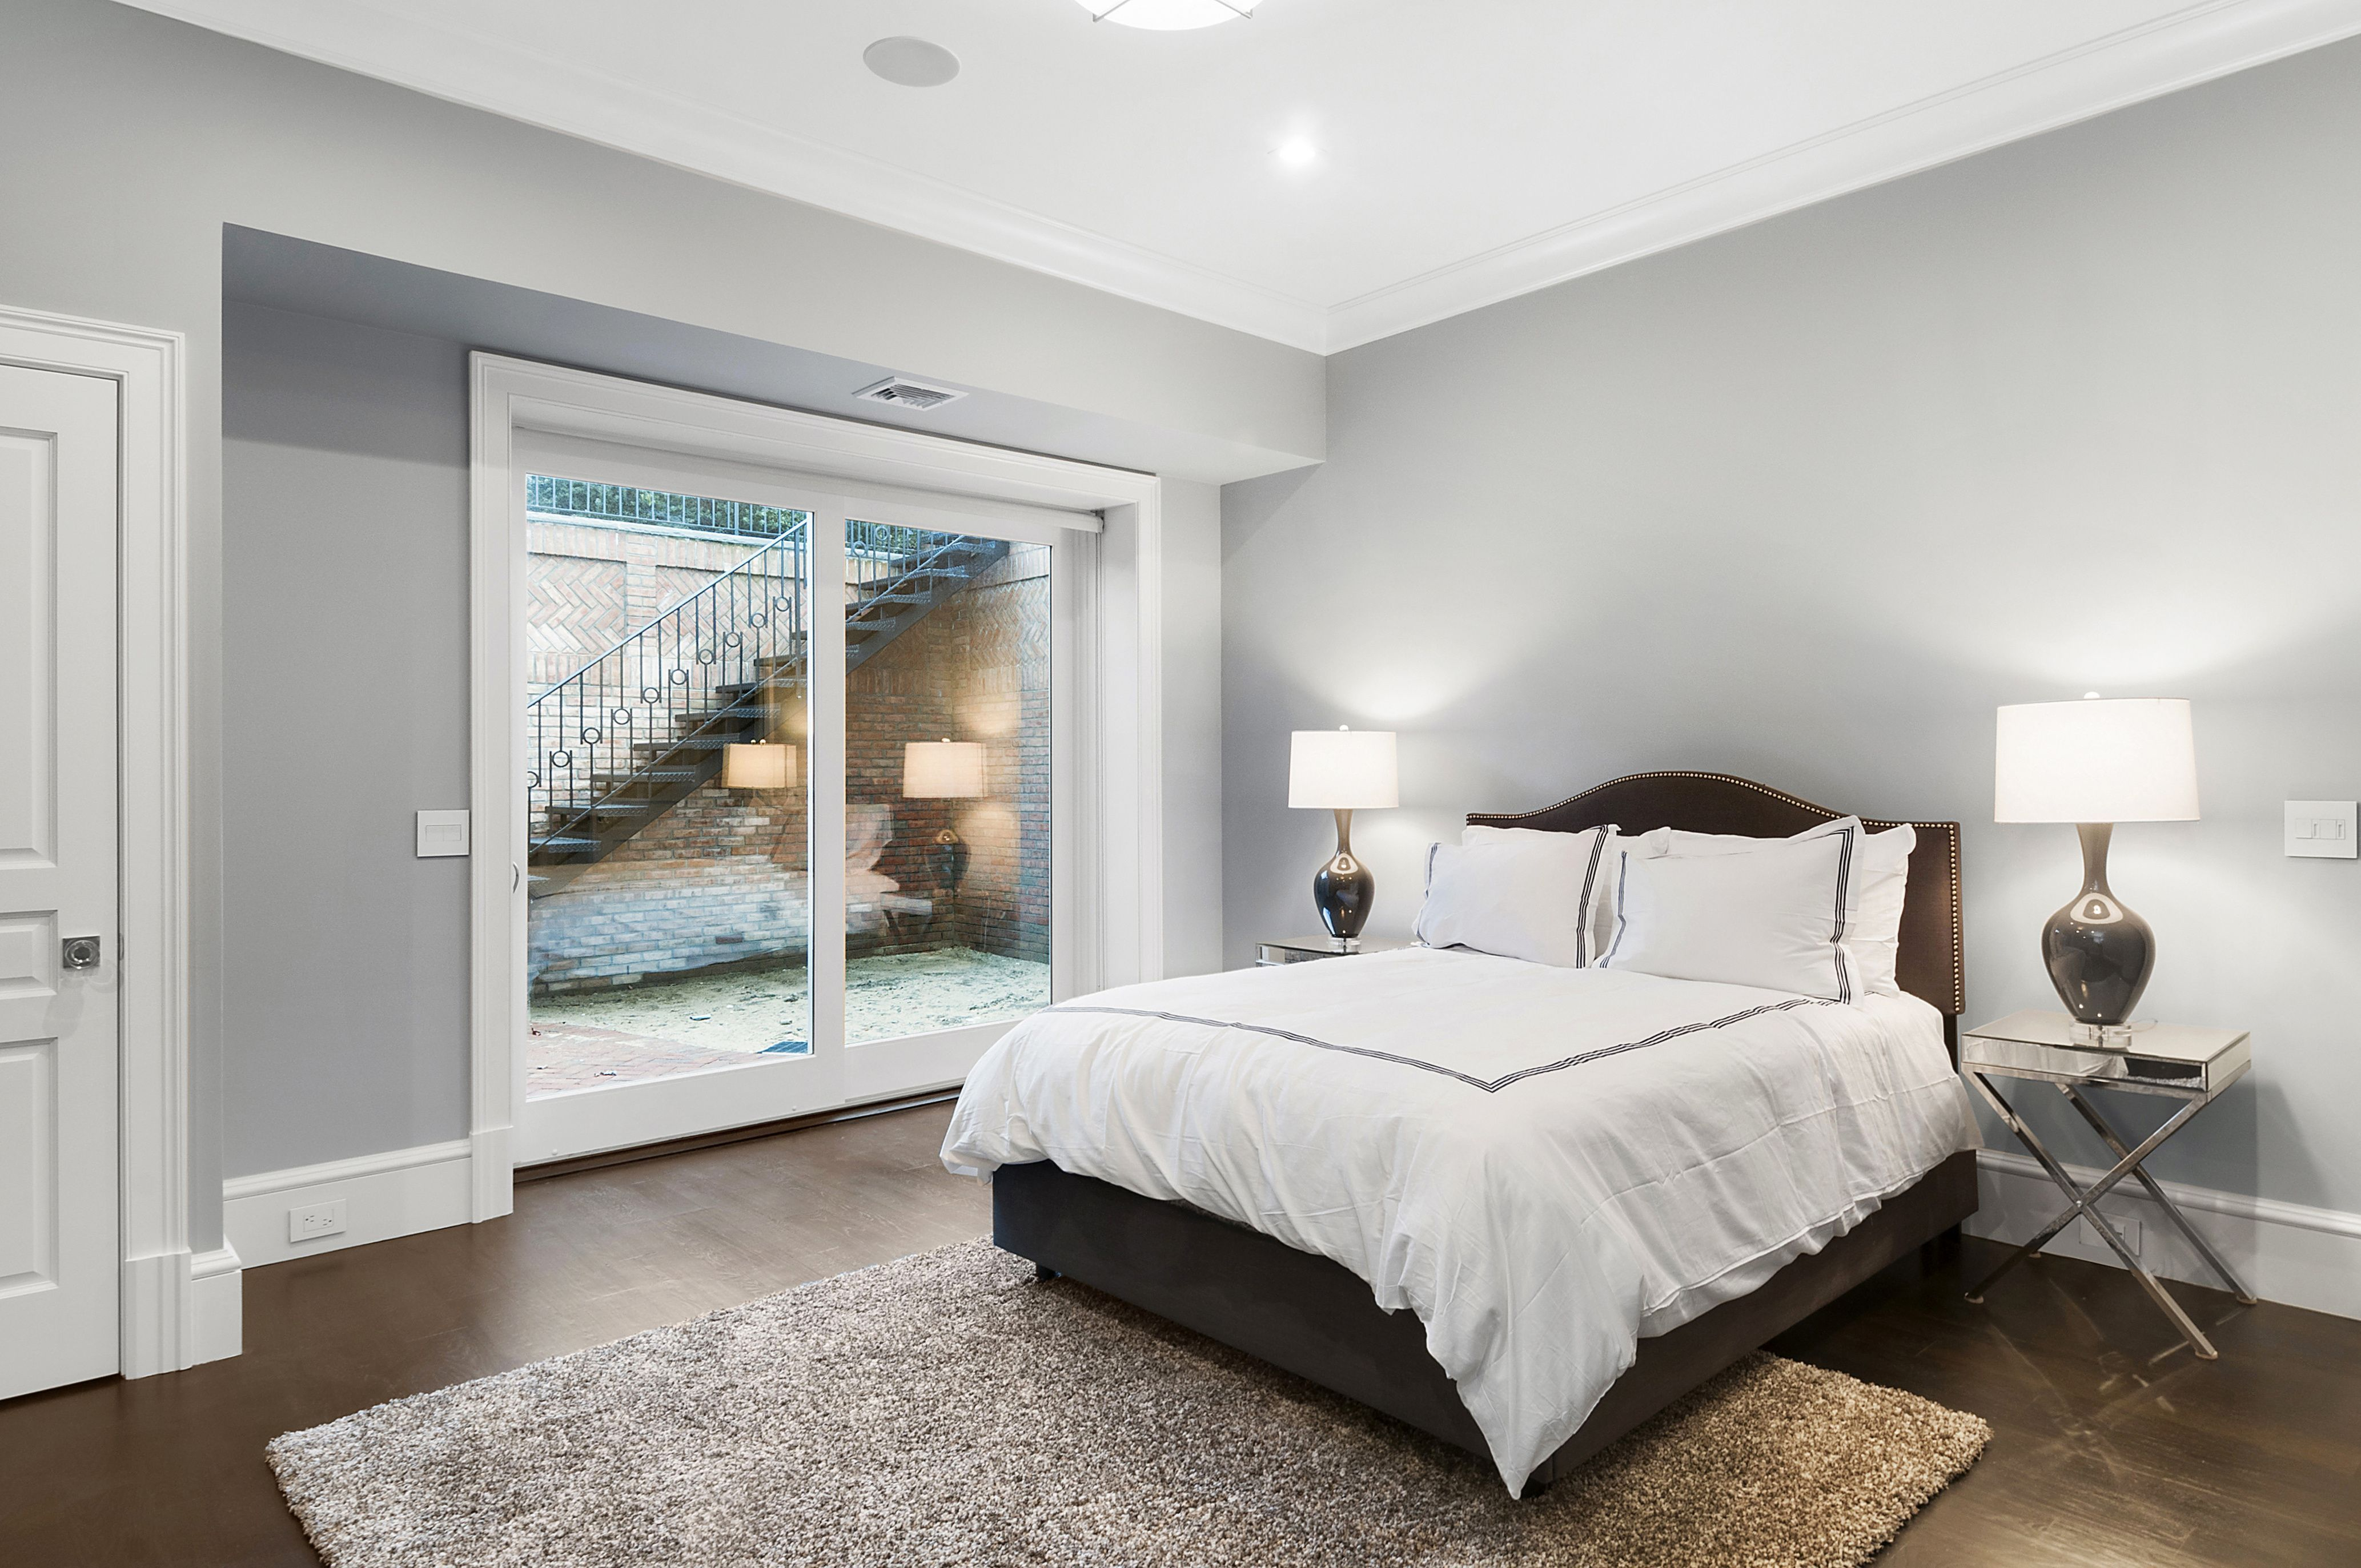 Embellish Your Bedroom With The Ideal Paint Color Plan And Embellishing Concepts These Are Several Of The Finest Colors To Paint Your Master Bedroom To Produce Bedroom paint color concept